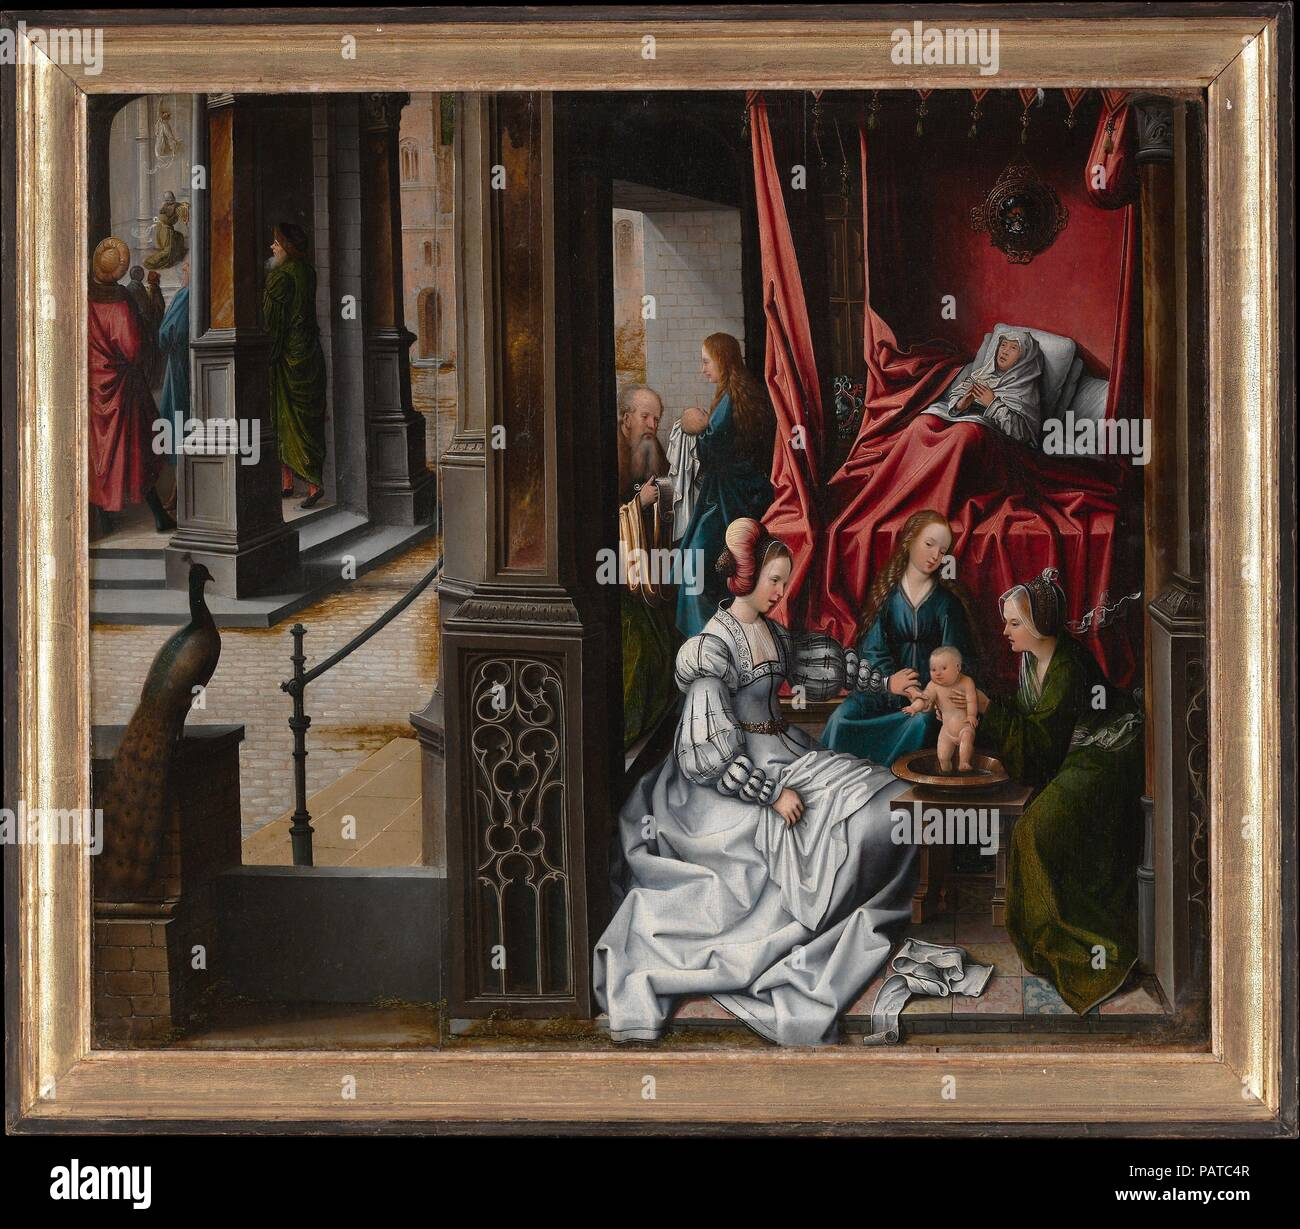 The Birth and Naming of Saint John the Baptist; (reverse) Trompe-l'oeil with Painting of The Man of Sorrows. Artist: Bernard van Orley (Netherlandish, Brussels ca. 1492-1541/42 Brussels). Dimensions: 25 x 30 in. (63.5 x 76.2 cm). Date: ca. 1514-15.  This panel once formed the left wing of an altarpiece dedicated to Saint John the Baptist that was commissioned by abbot Jacques Coëne for the Benedictine Abbey Church in Marchiennes, near Tournai. It depicts Saint Elizabeth in bed, shortly after giving birth to the newborn saint. Zacharias appears at the entrance to her room, carrying a scroll whi Stock Photo